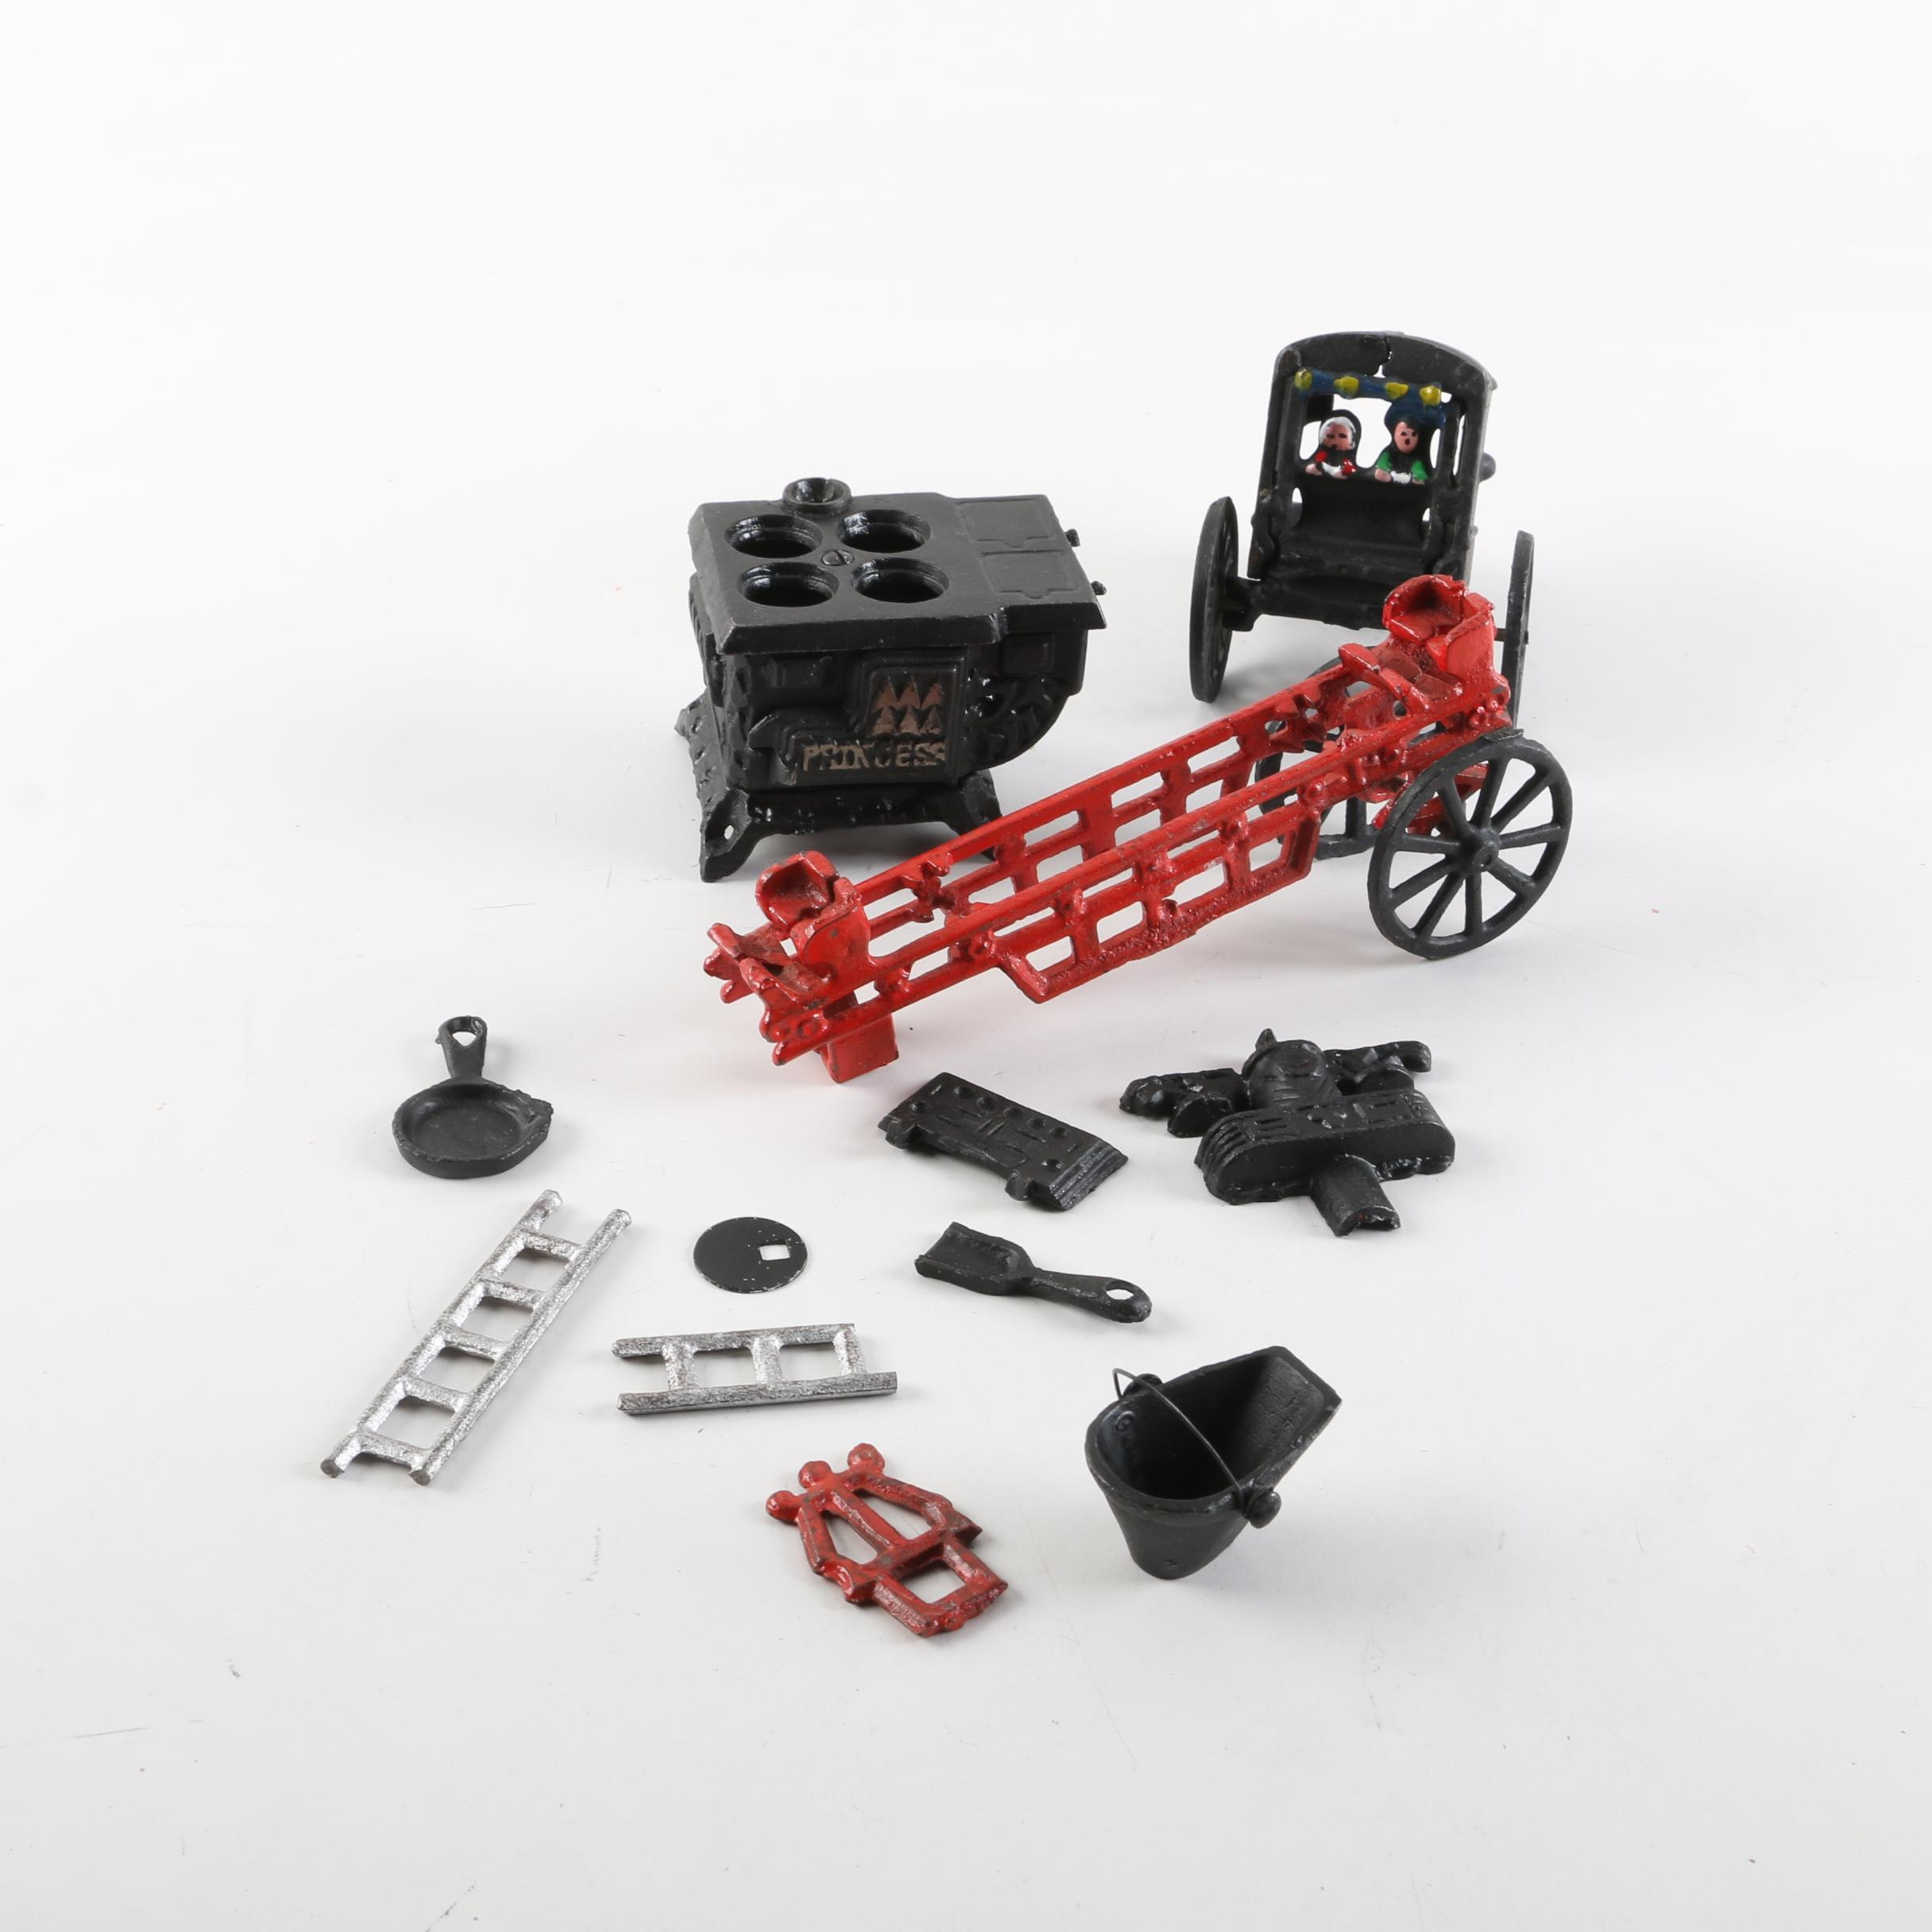 Cast Iron Miniature Stove and Other Items